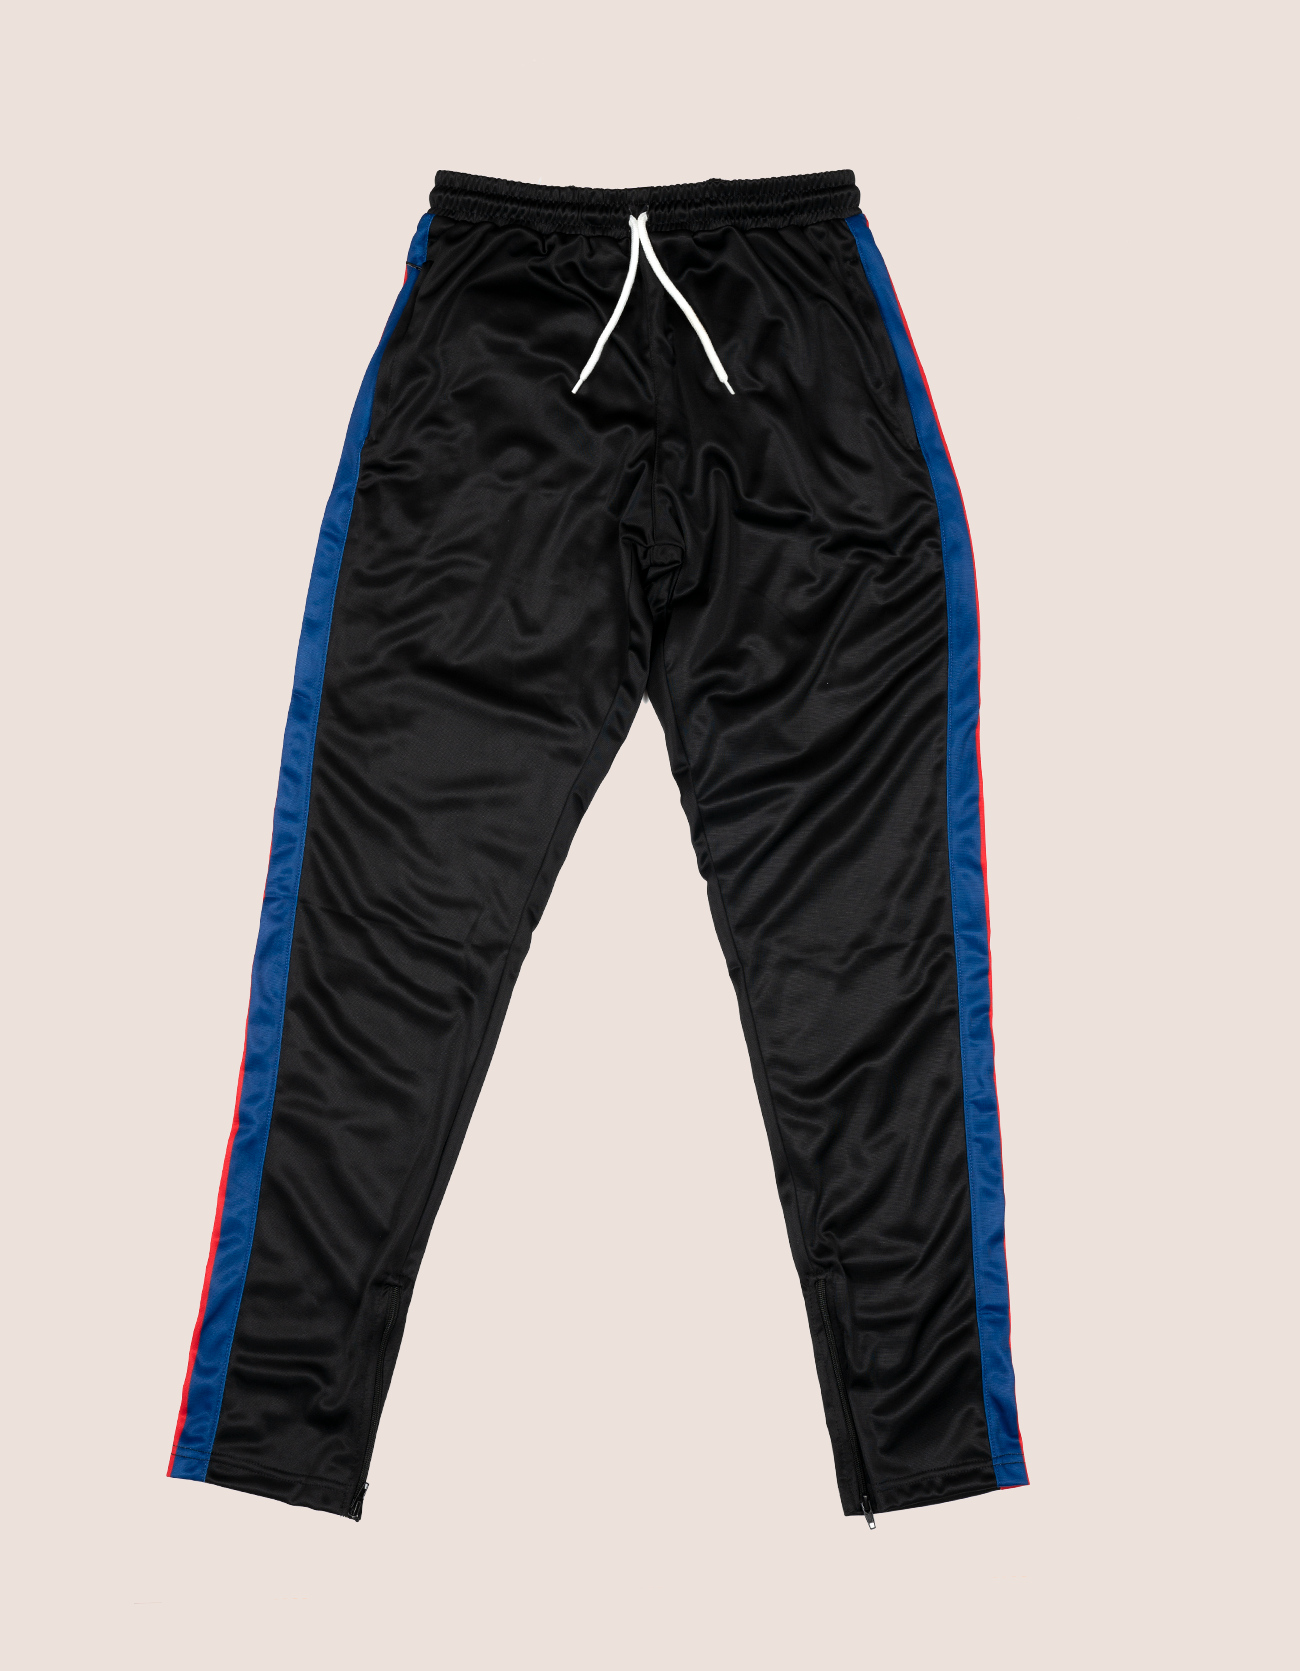 BLK DIPSET RED/BLUE 97 Tracksuit